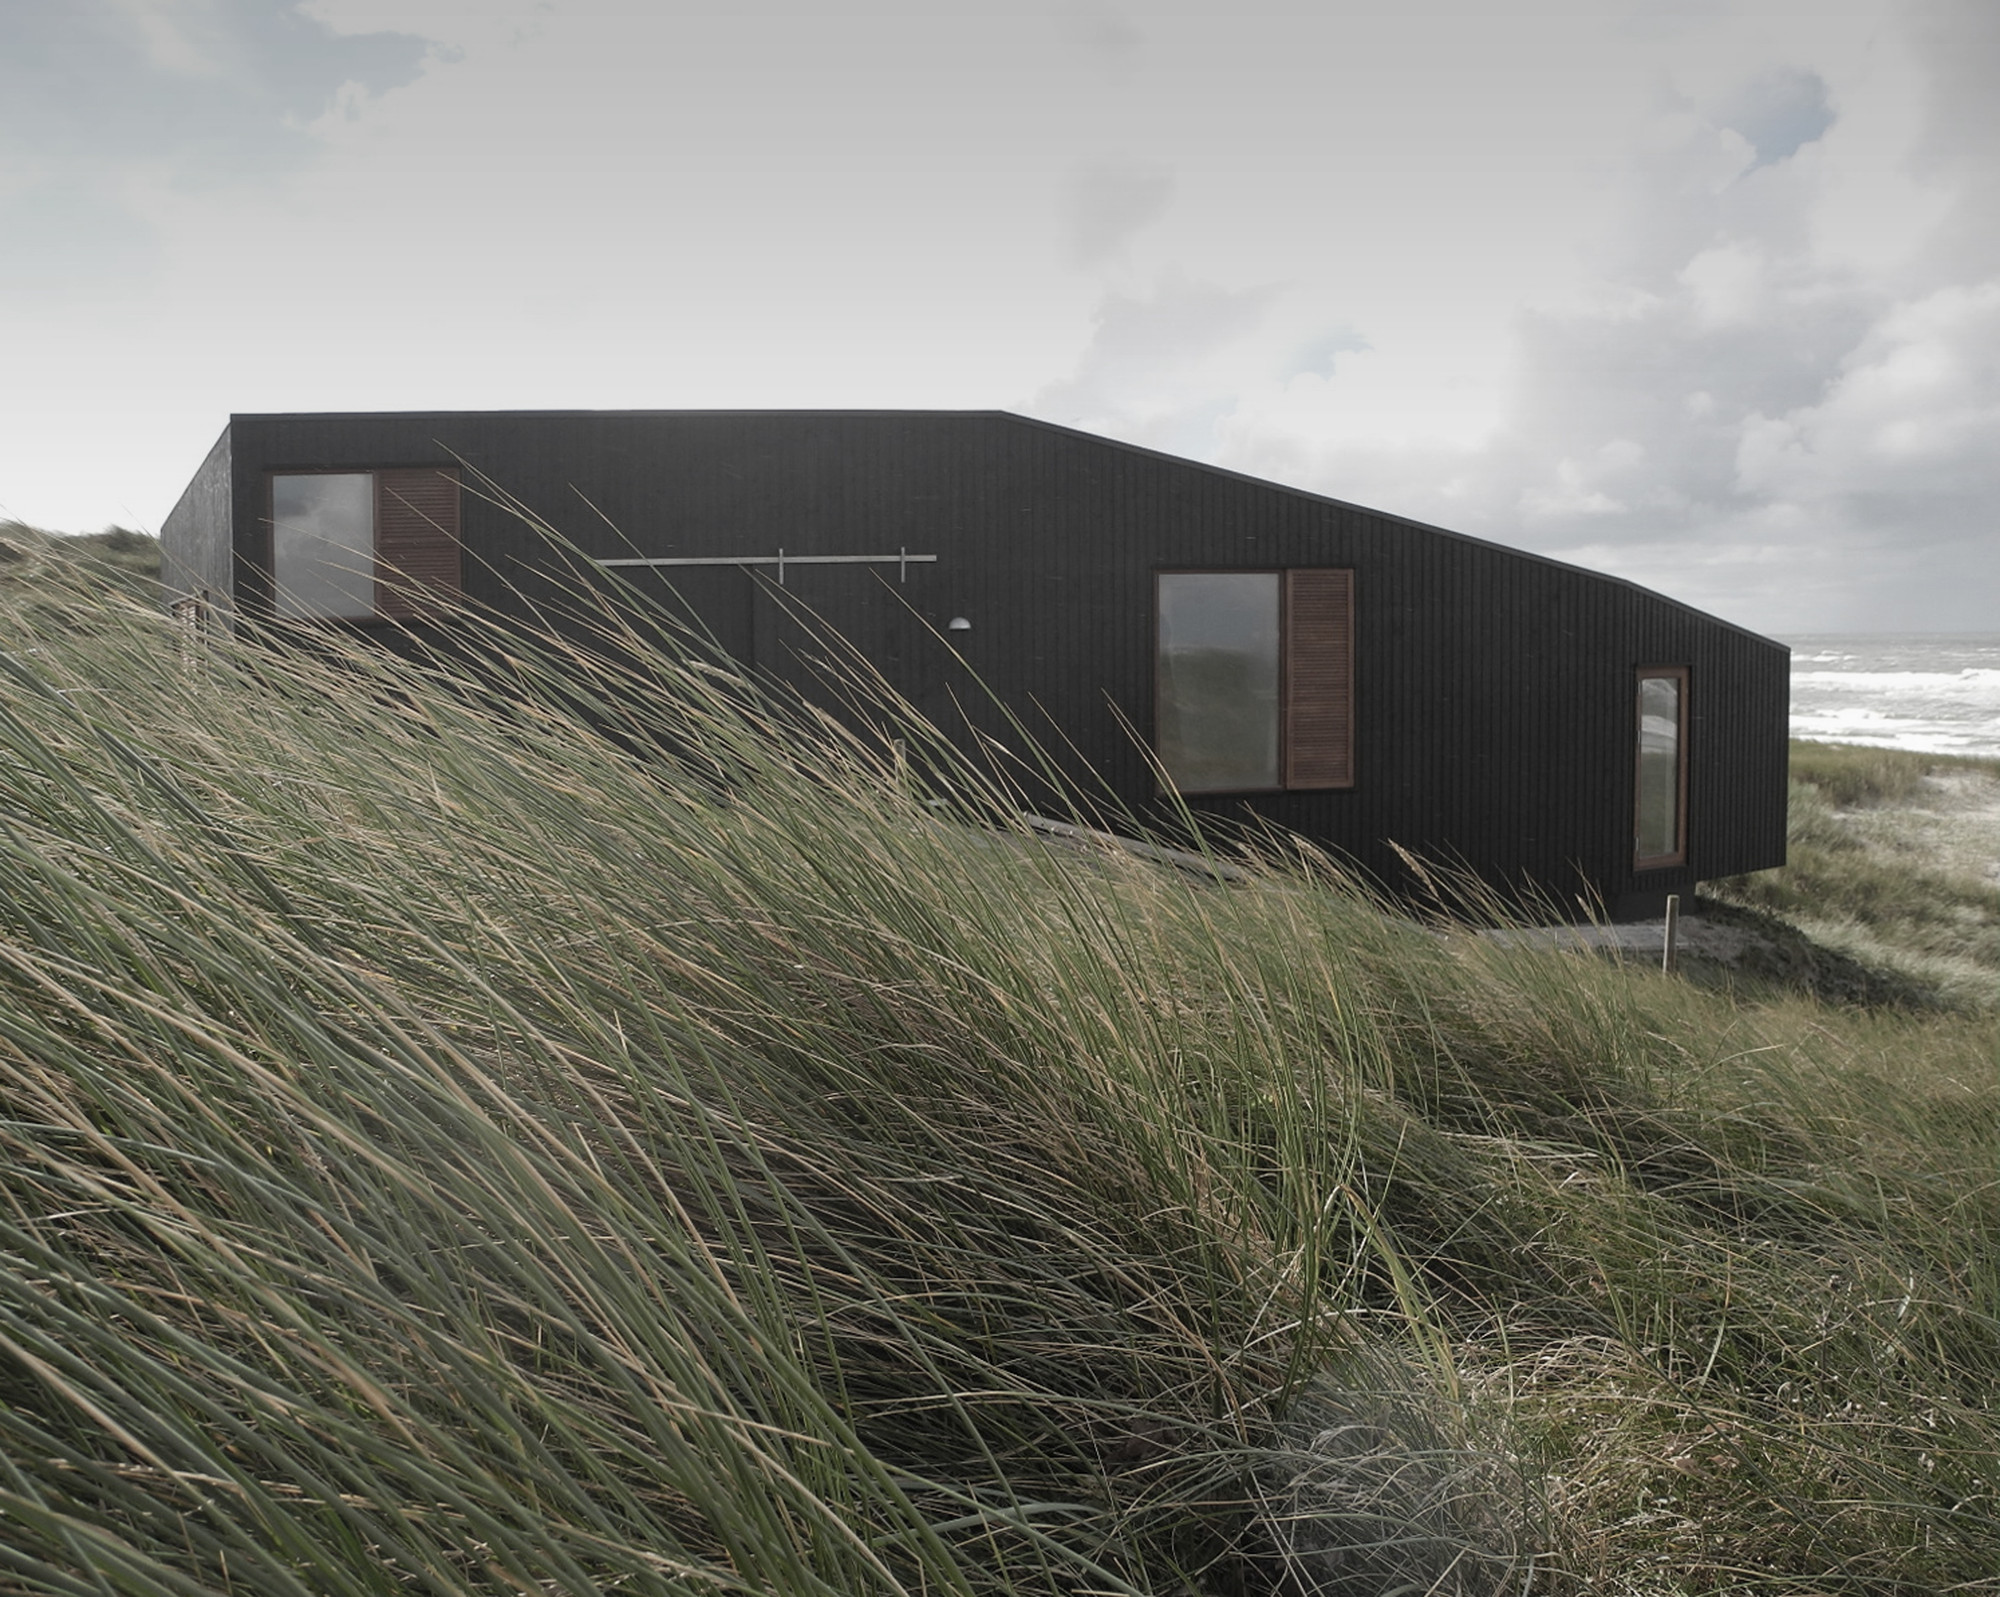 Vacation House in Henne by Mette Lange Architects